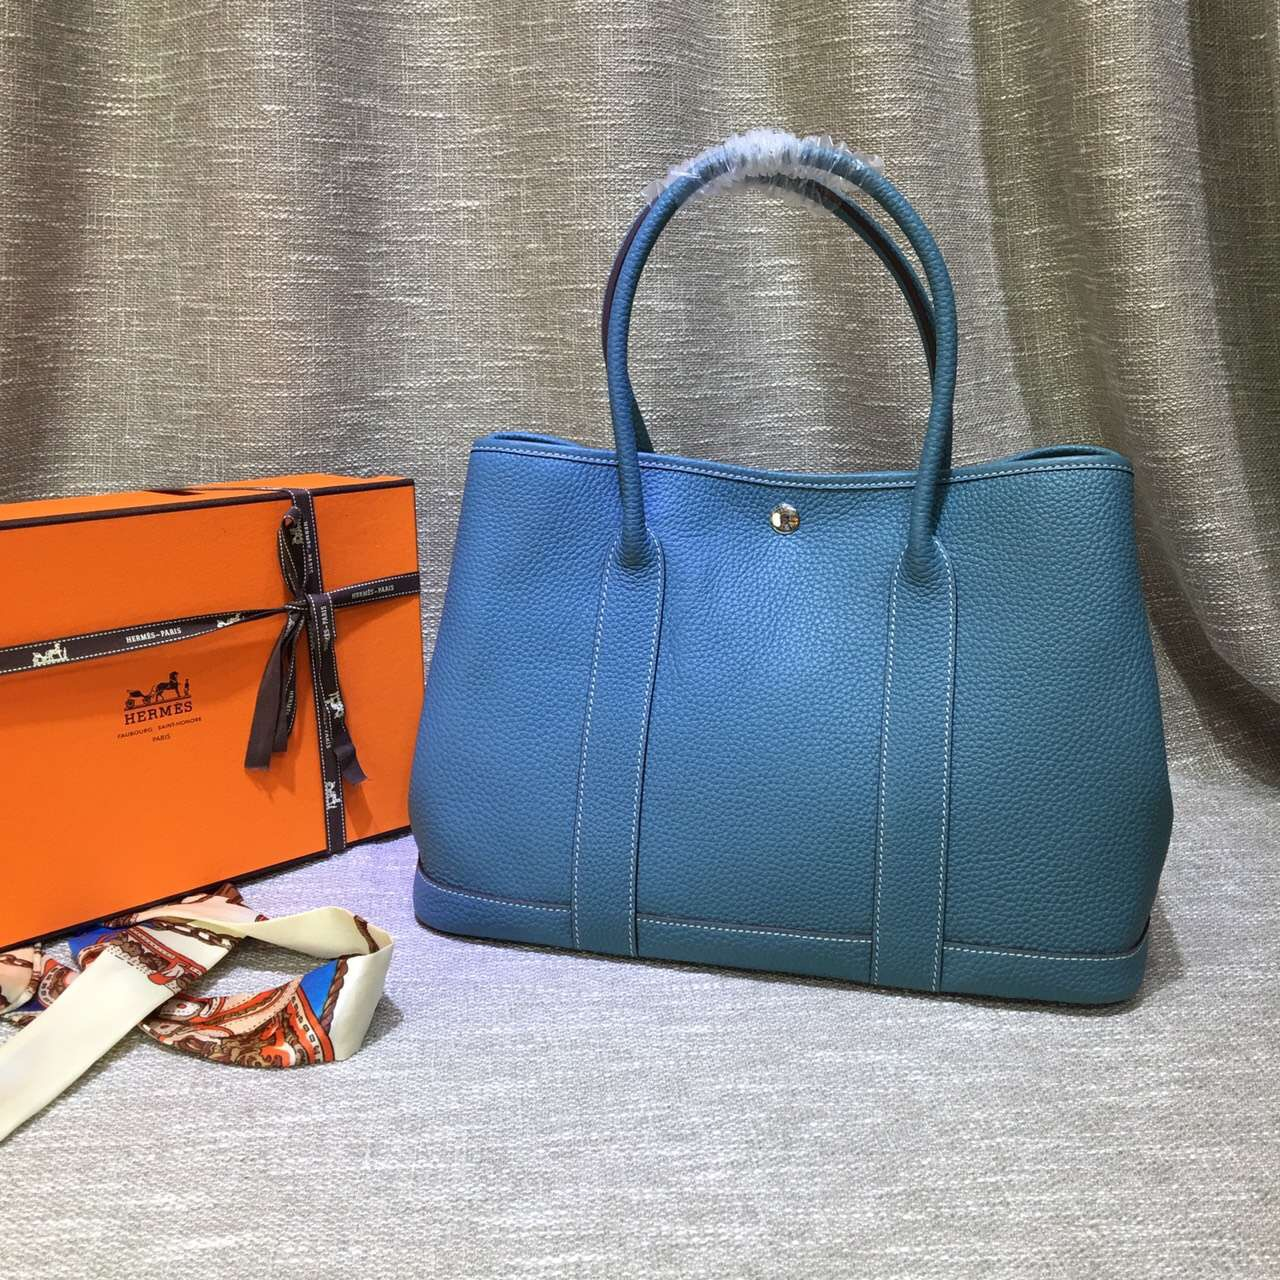 Hermes Garden Party Handbag Large 36cm Blue